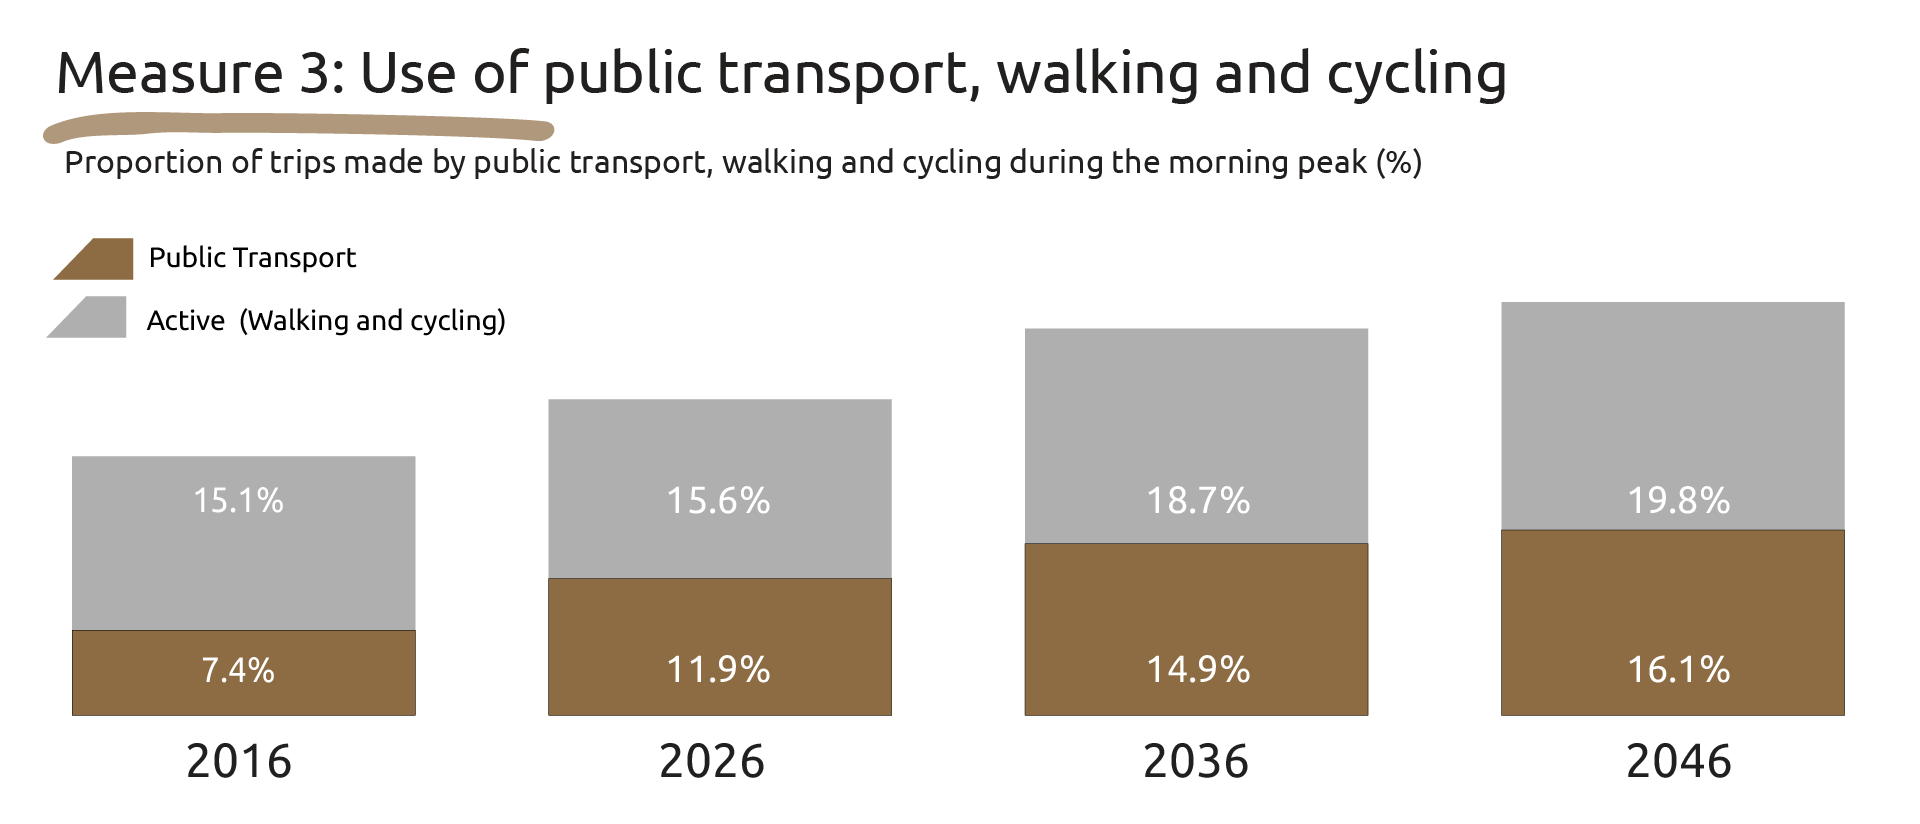 Graphic showing the proportion of trips made by public transport/active walking and cycling during the morning peak: 2016 - 7.4%/15.1%, 2026 - 11.9%/15.6%, 2036 - 14.9%/18.7% and 2046 - 16.1%/19.8%.